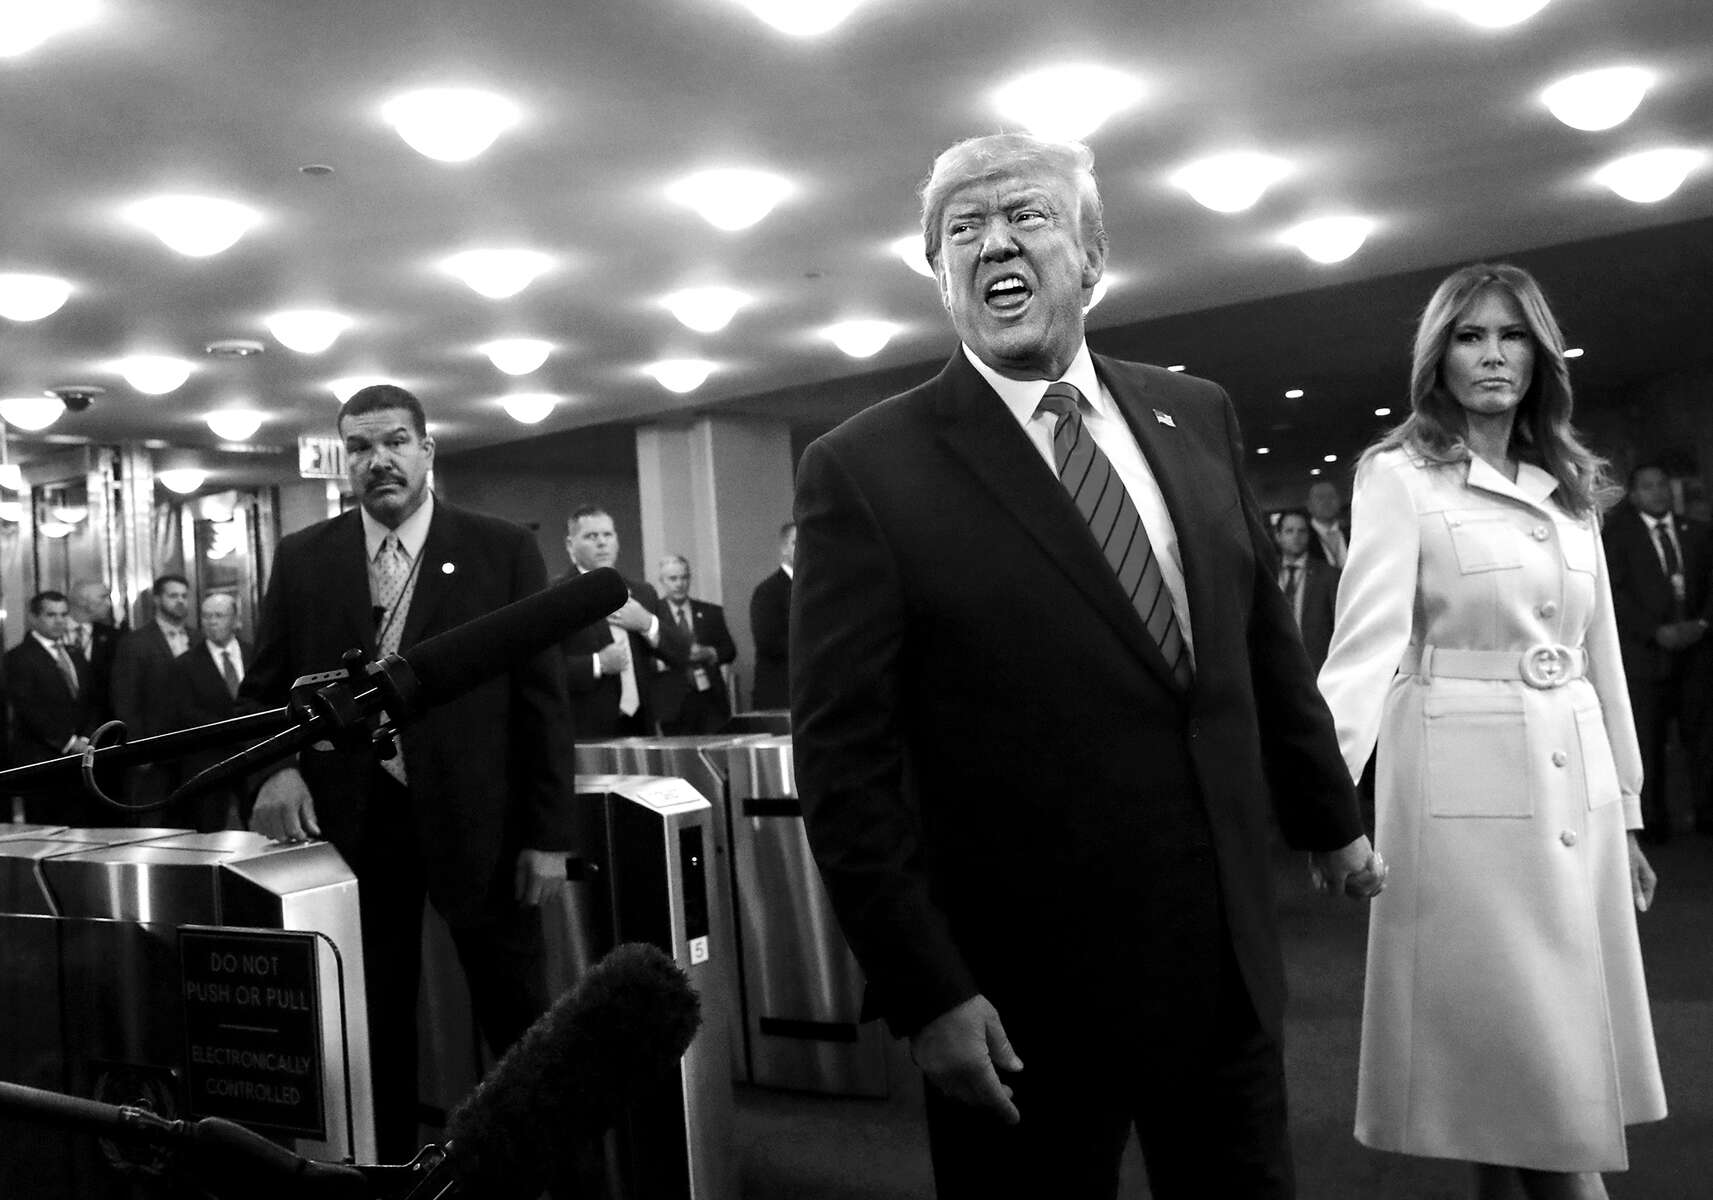 U.S. President Donald Trump speaks with reporters as he and first lady Melania Trump arrive to the 74th session of the United Nations General Assembly at the U.N. headquarters in New York, NY, on September 24, 2019. The president's interaction with the press is often adversarial.(For Reuters)